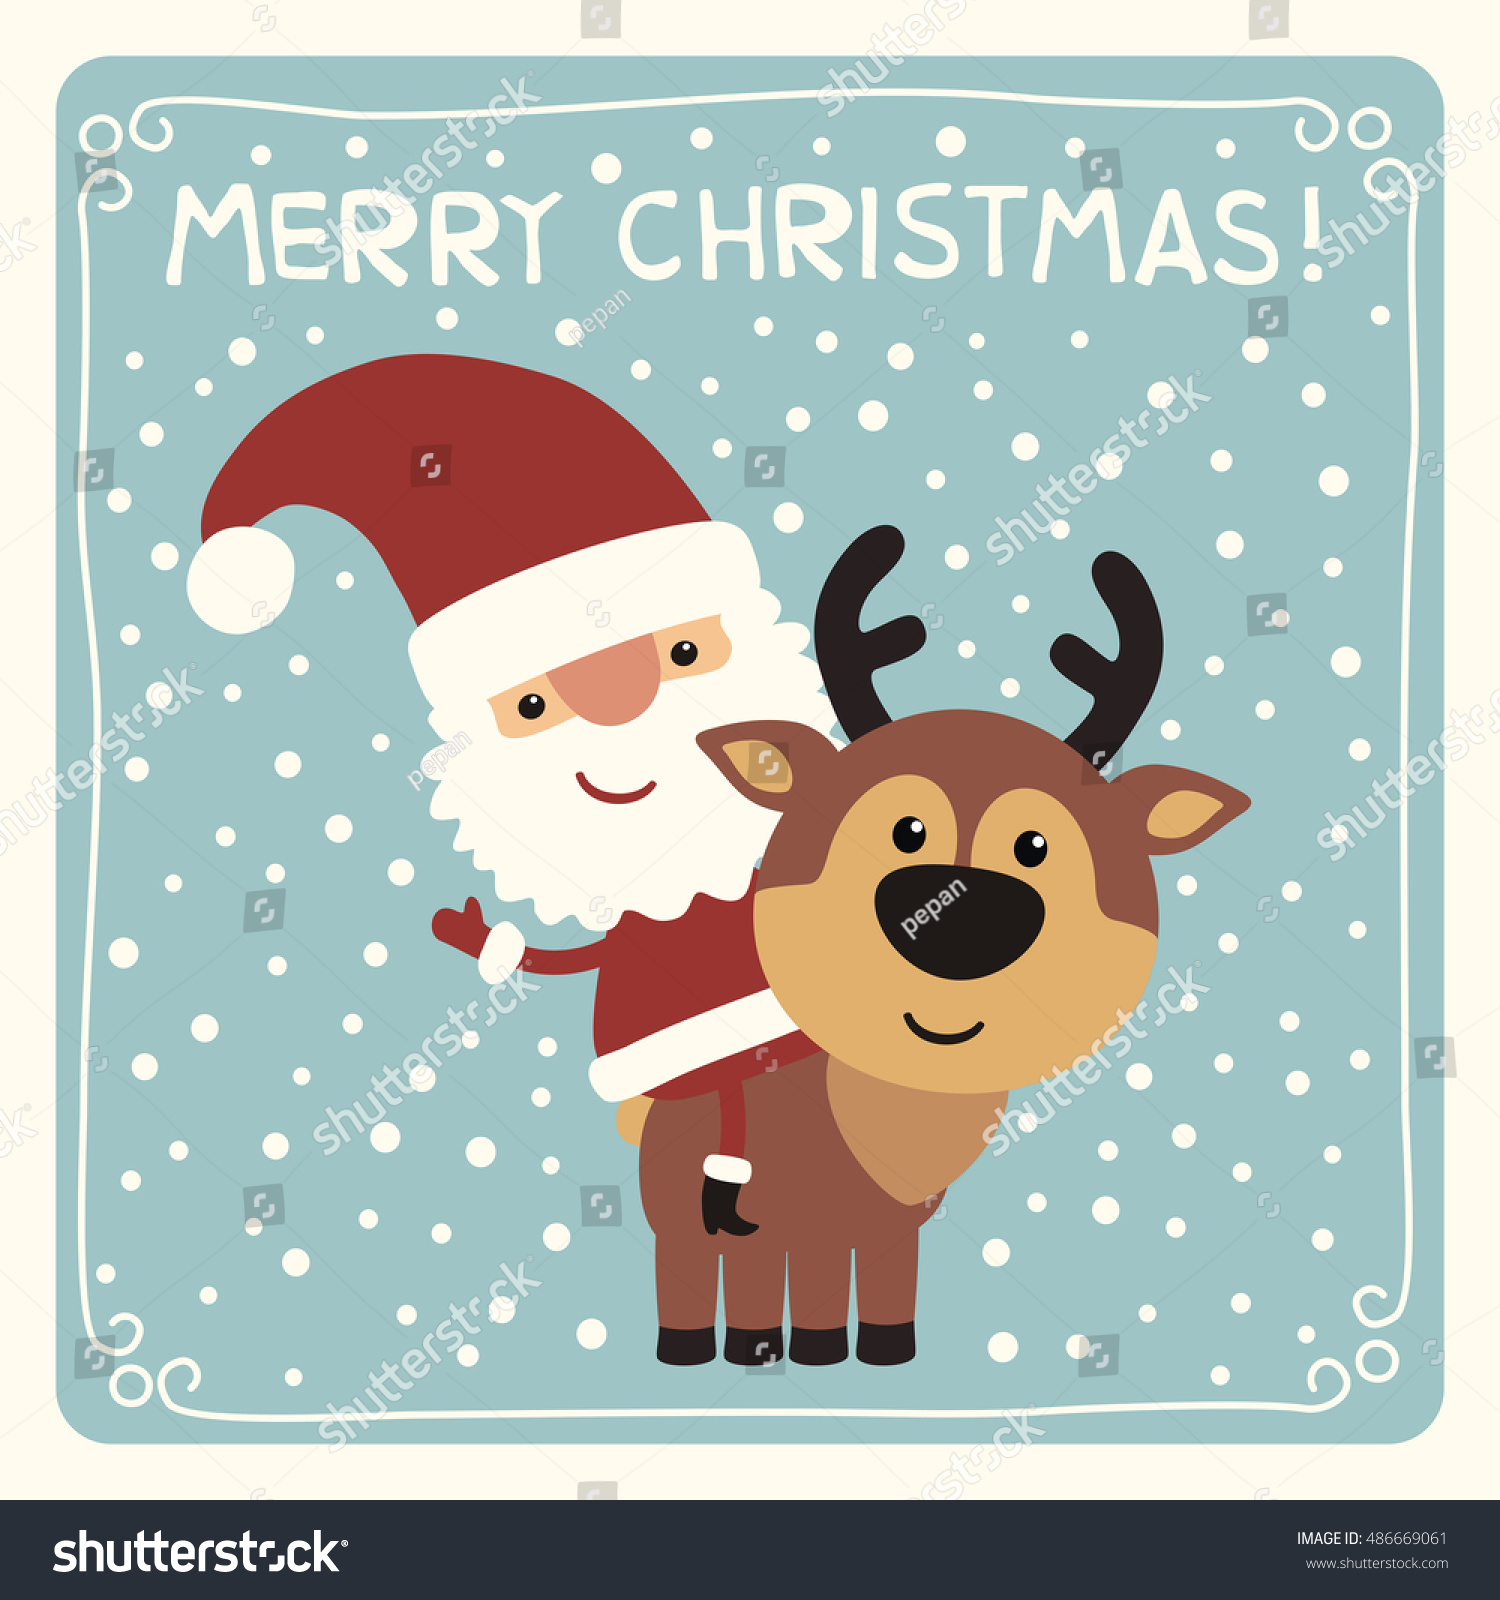 merry christmas funny santa claus riding on reindeer card in cartoon style - Merry Christmas Funny